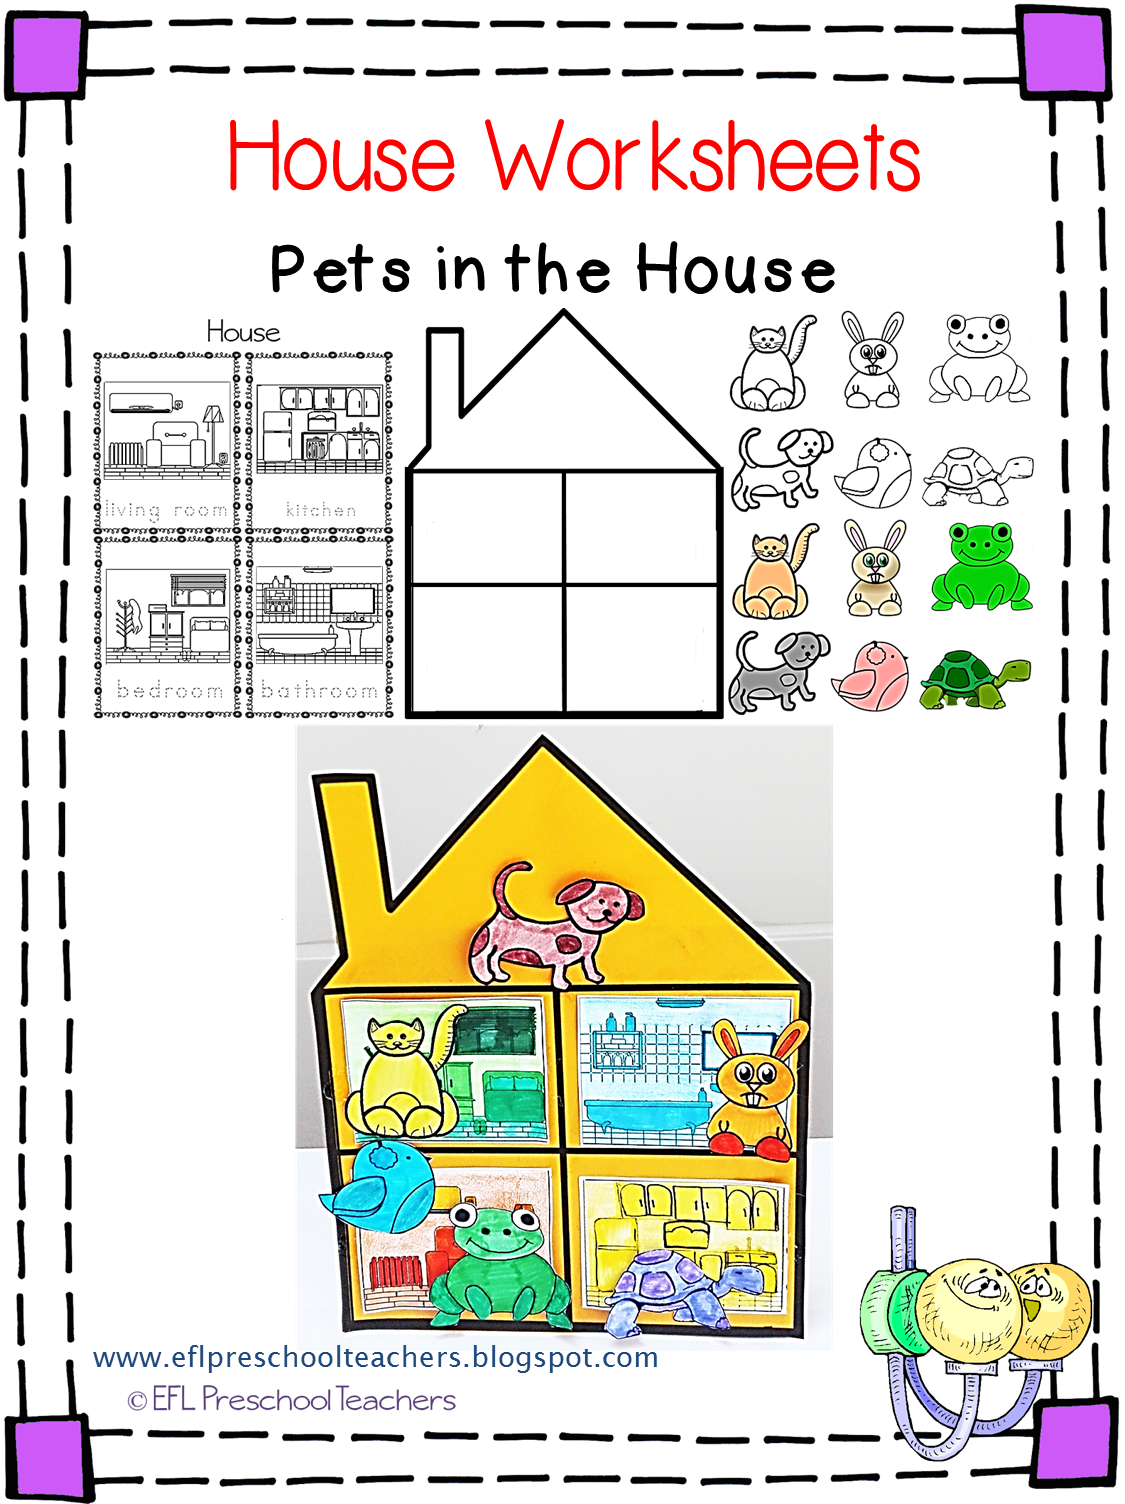 Esl Efl Preschool Teachers House Worksheets For The Preschool Ell